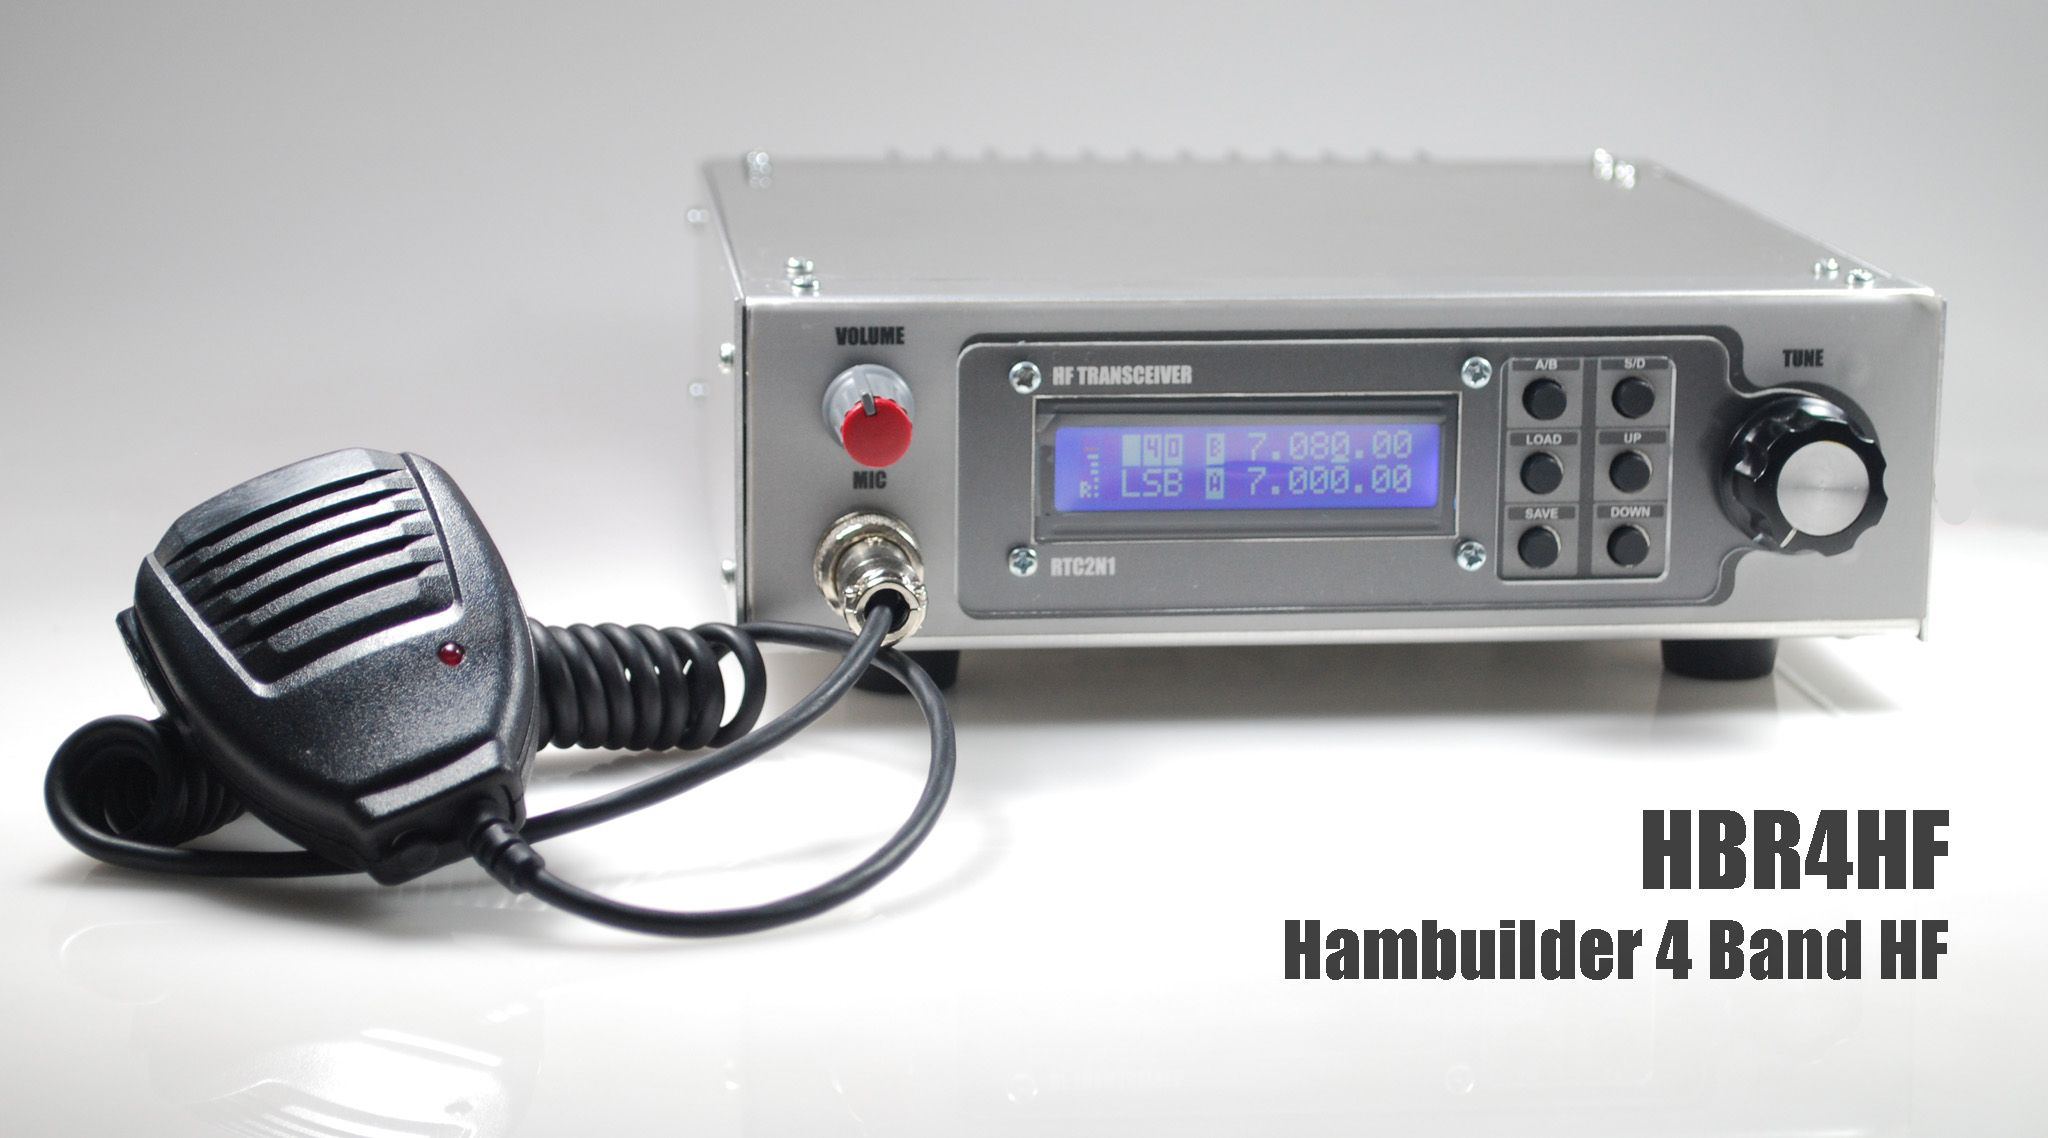 Hambuilder HBR4HF 4 Band HF Transceiver | Radios and the